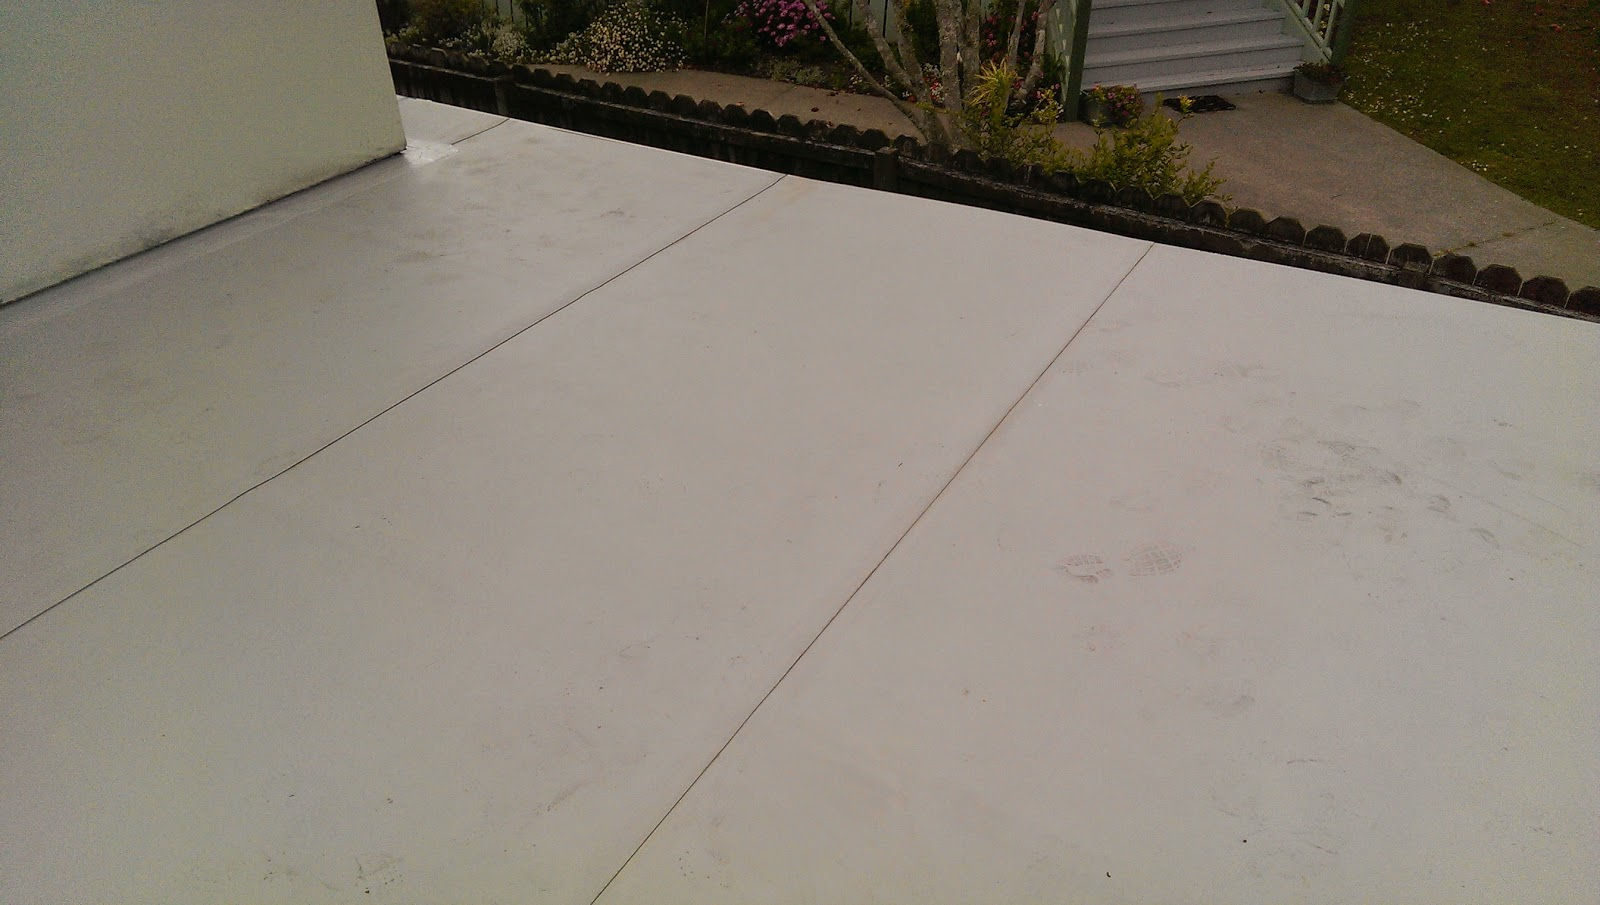 Masterseal Waterproofing Ardex Butyseal Butynol Roof